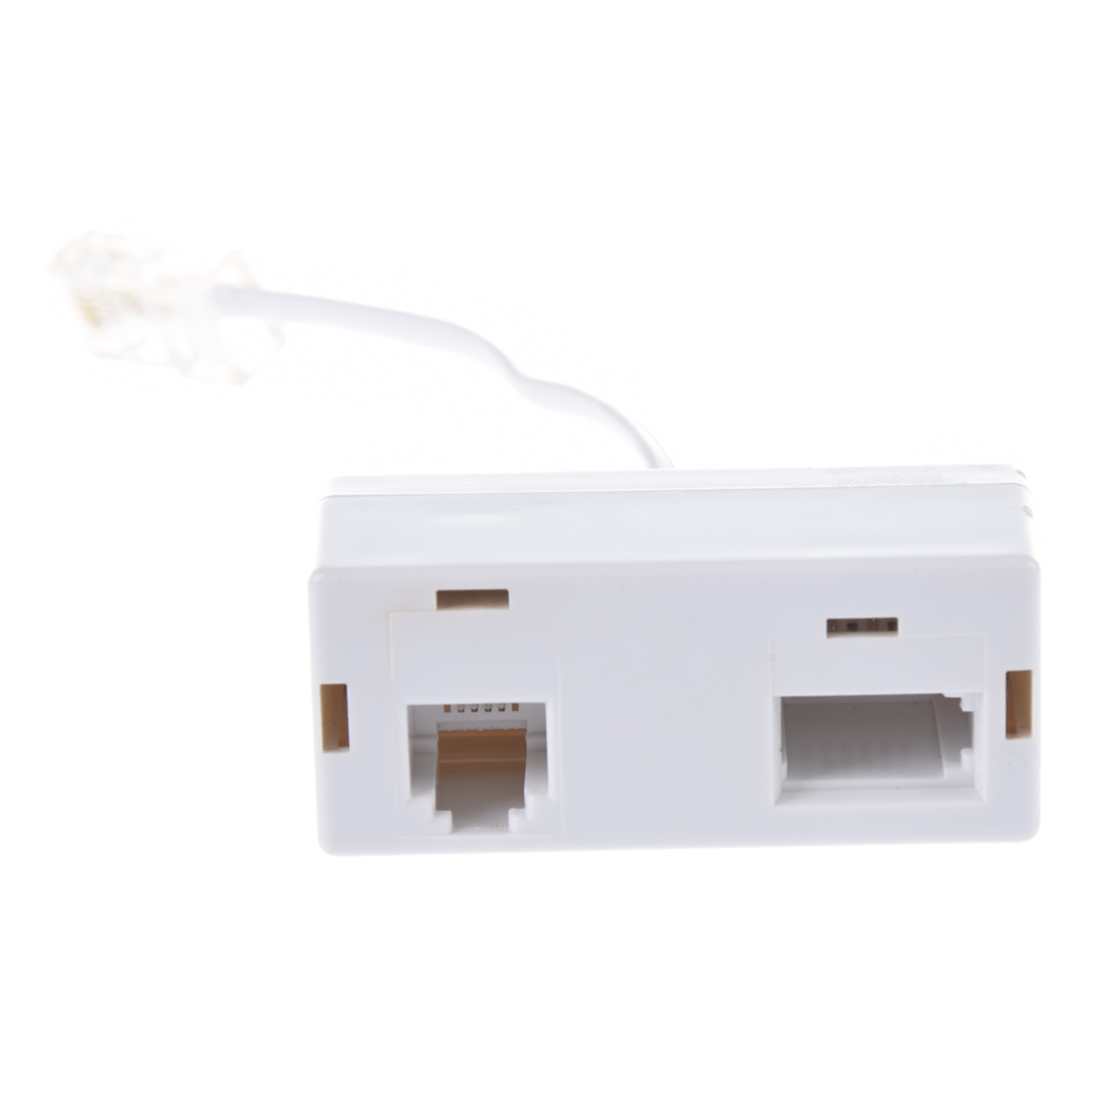 Jfbl Hot Sale Rj45 Plug To Bt Rj11 Secondary Splitter Telephone Wiring Diagram Adapter In Connectors From Home Improvement On Alibaba Group